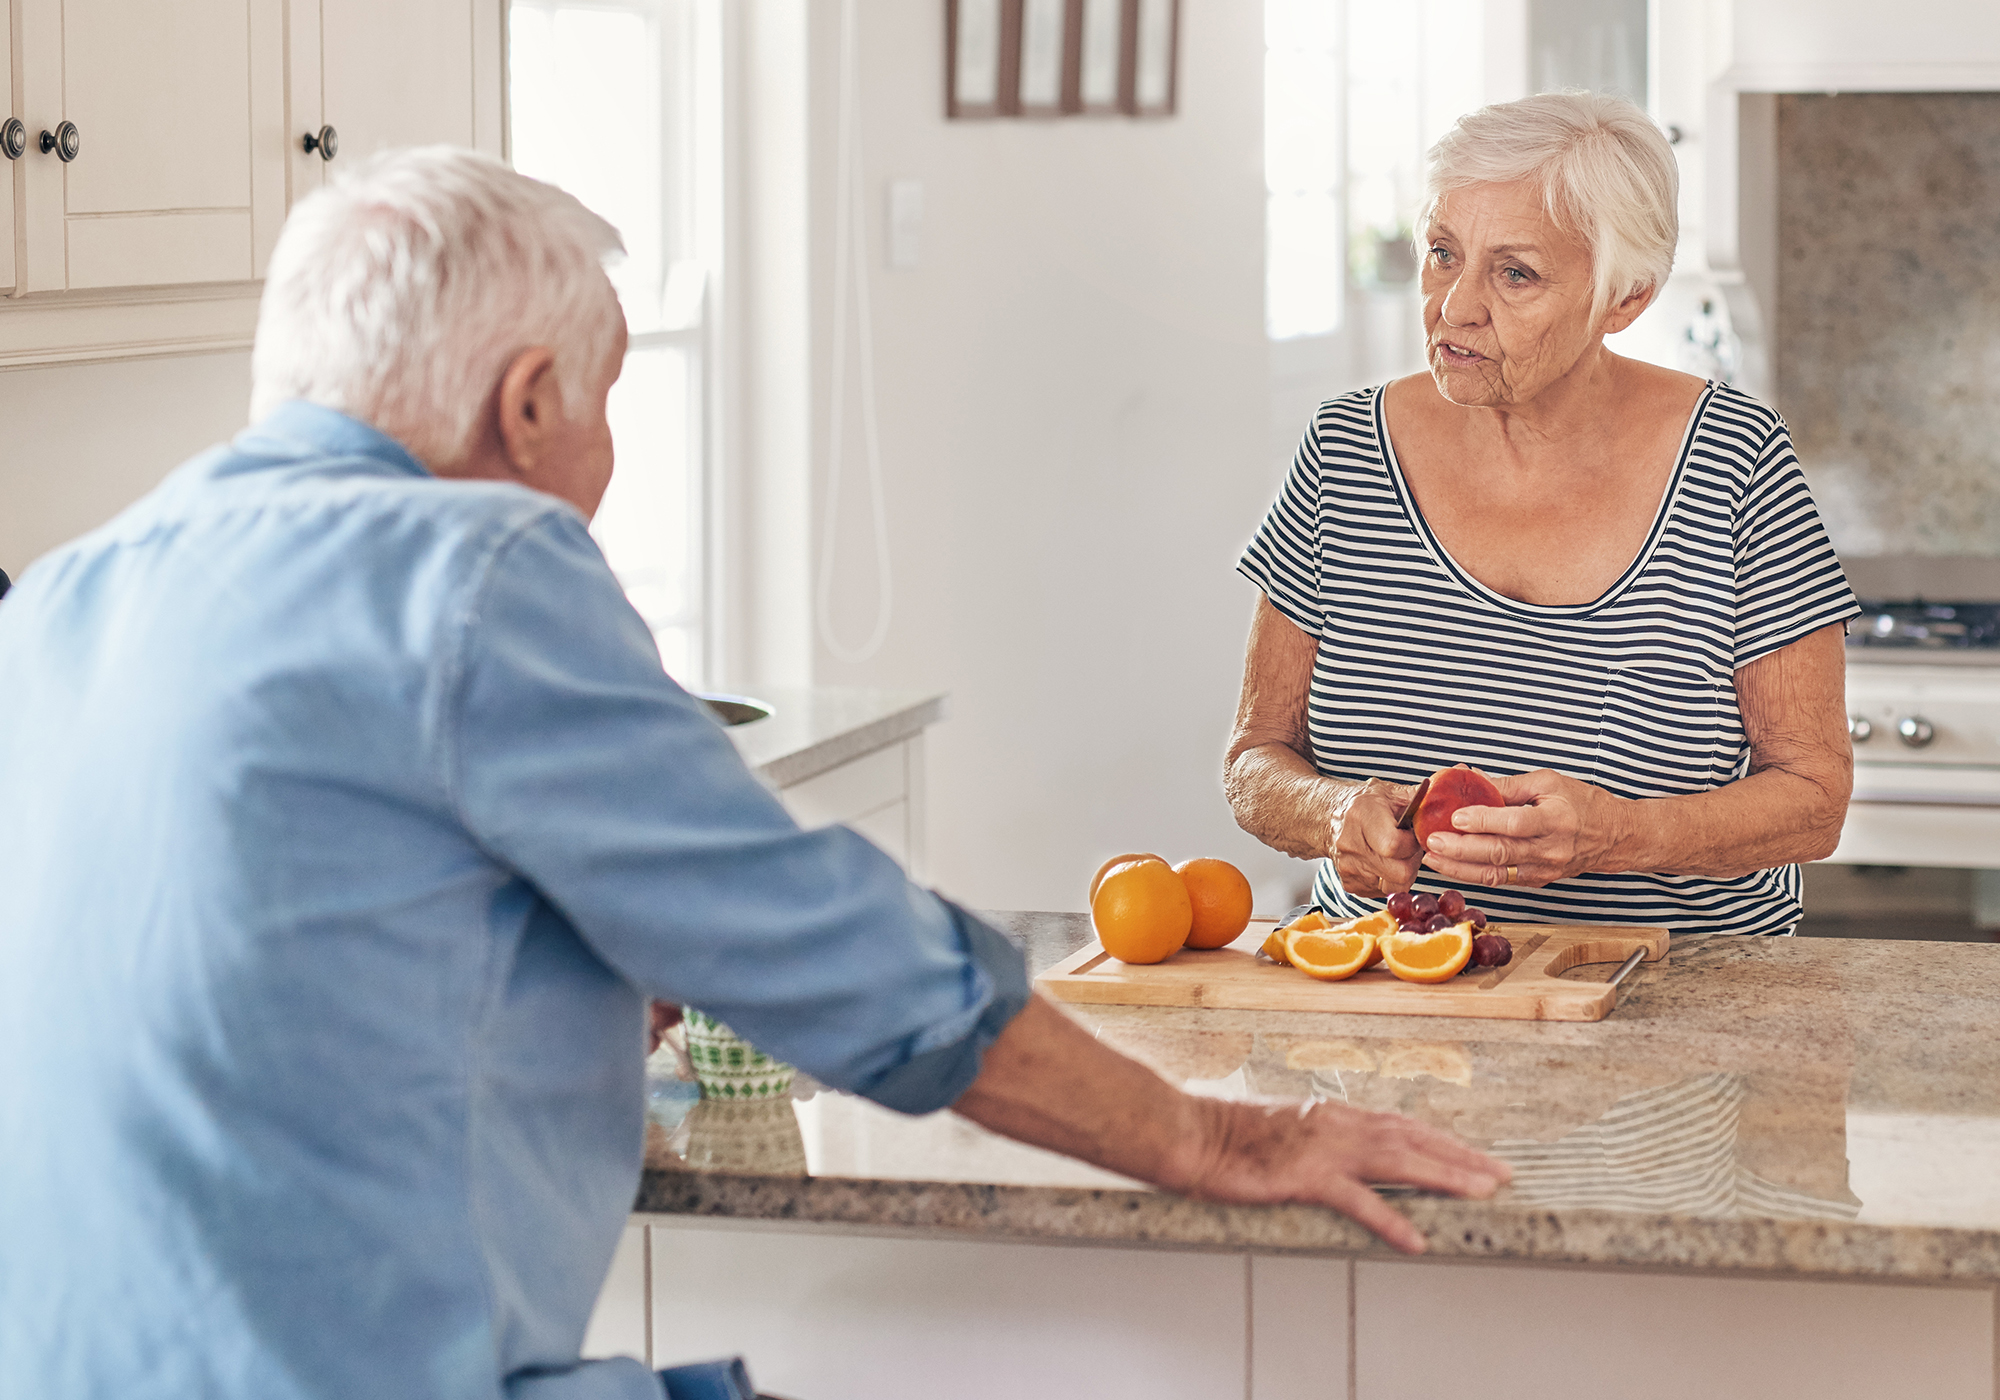 10 Signs It Isn't Safe for Your Loved One to Age in Place